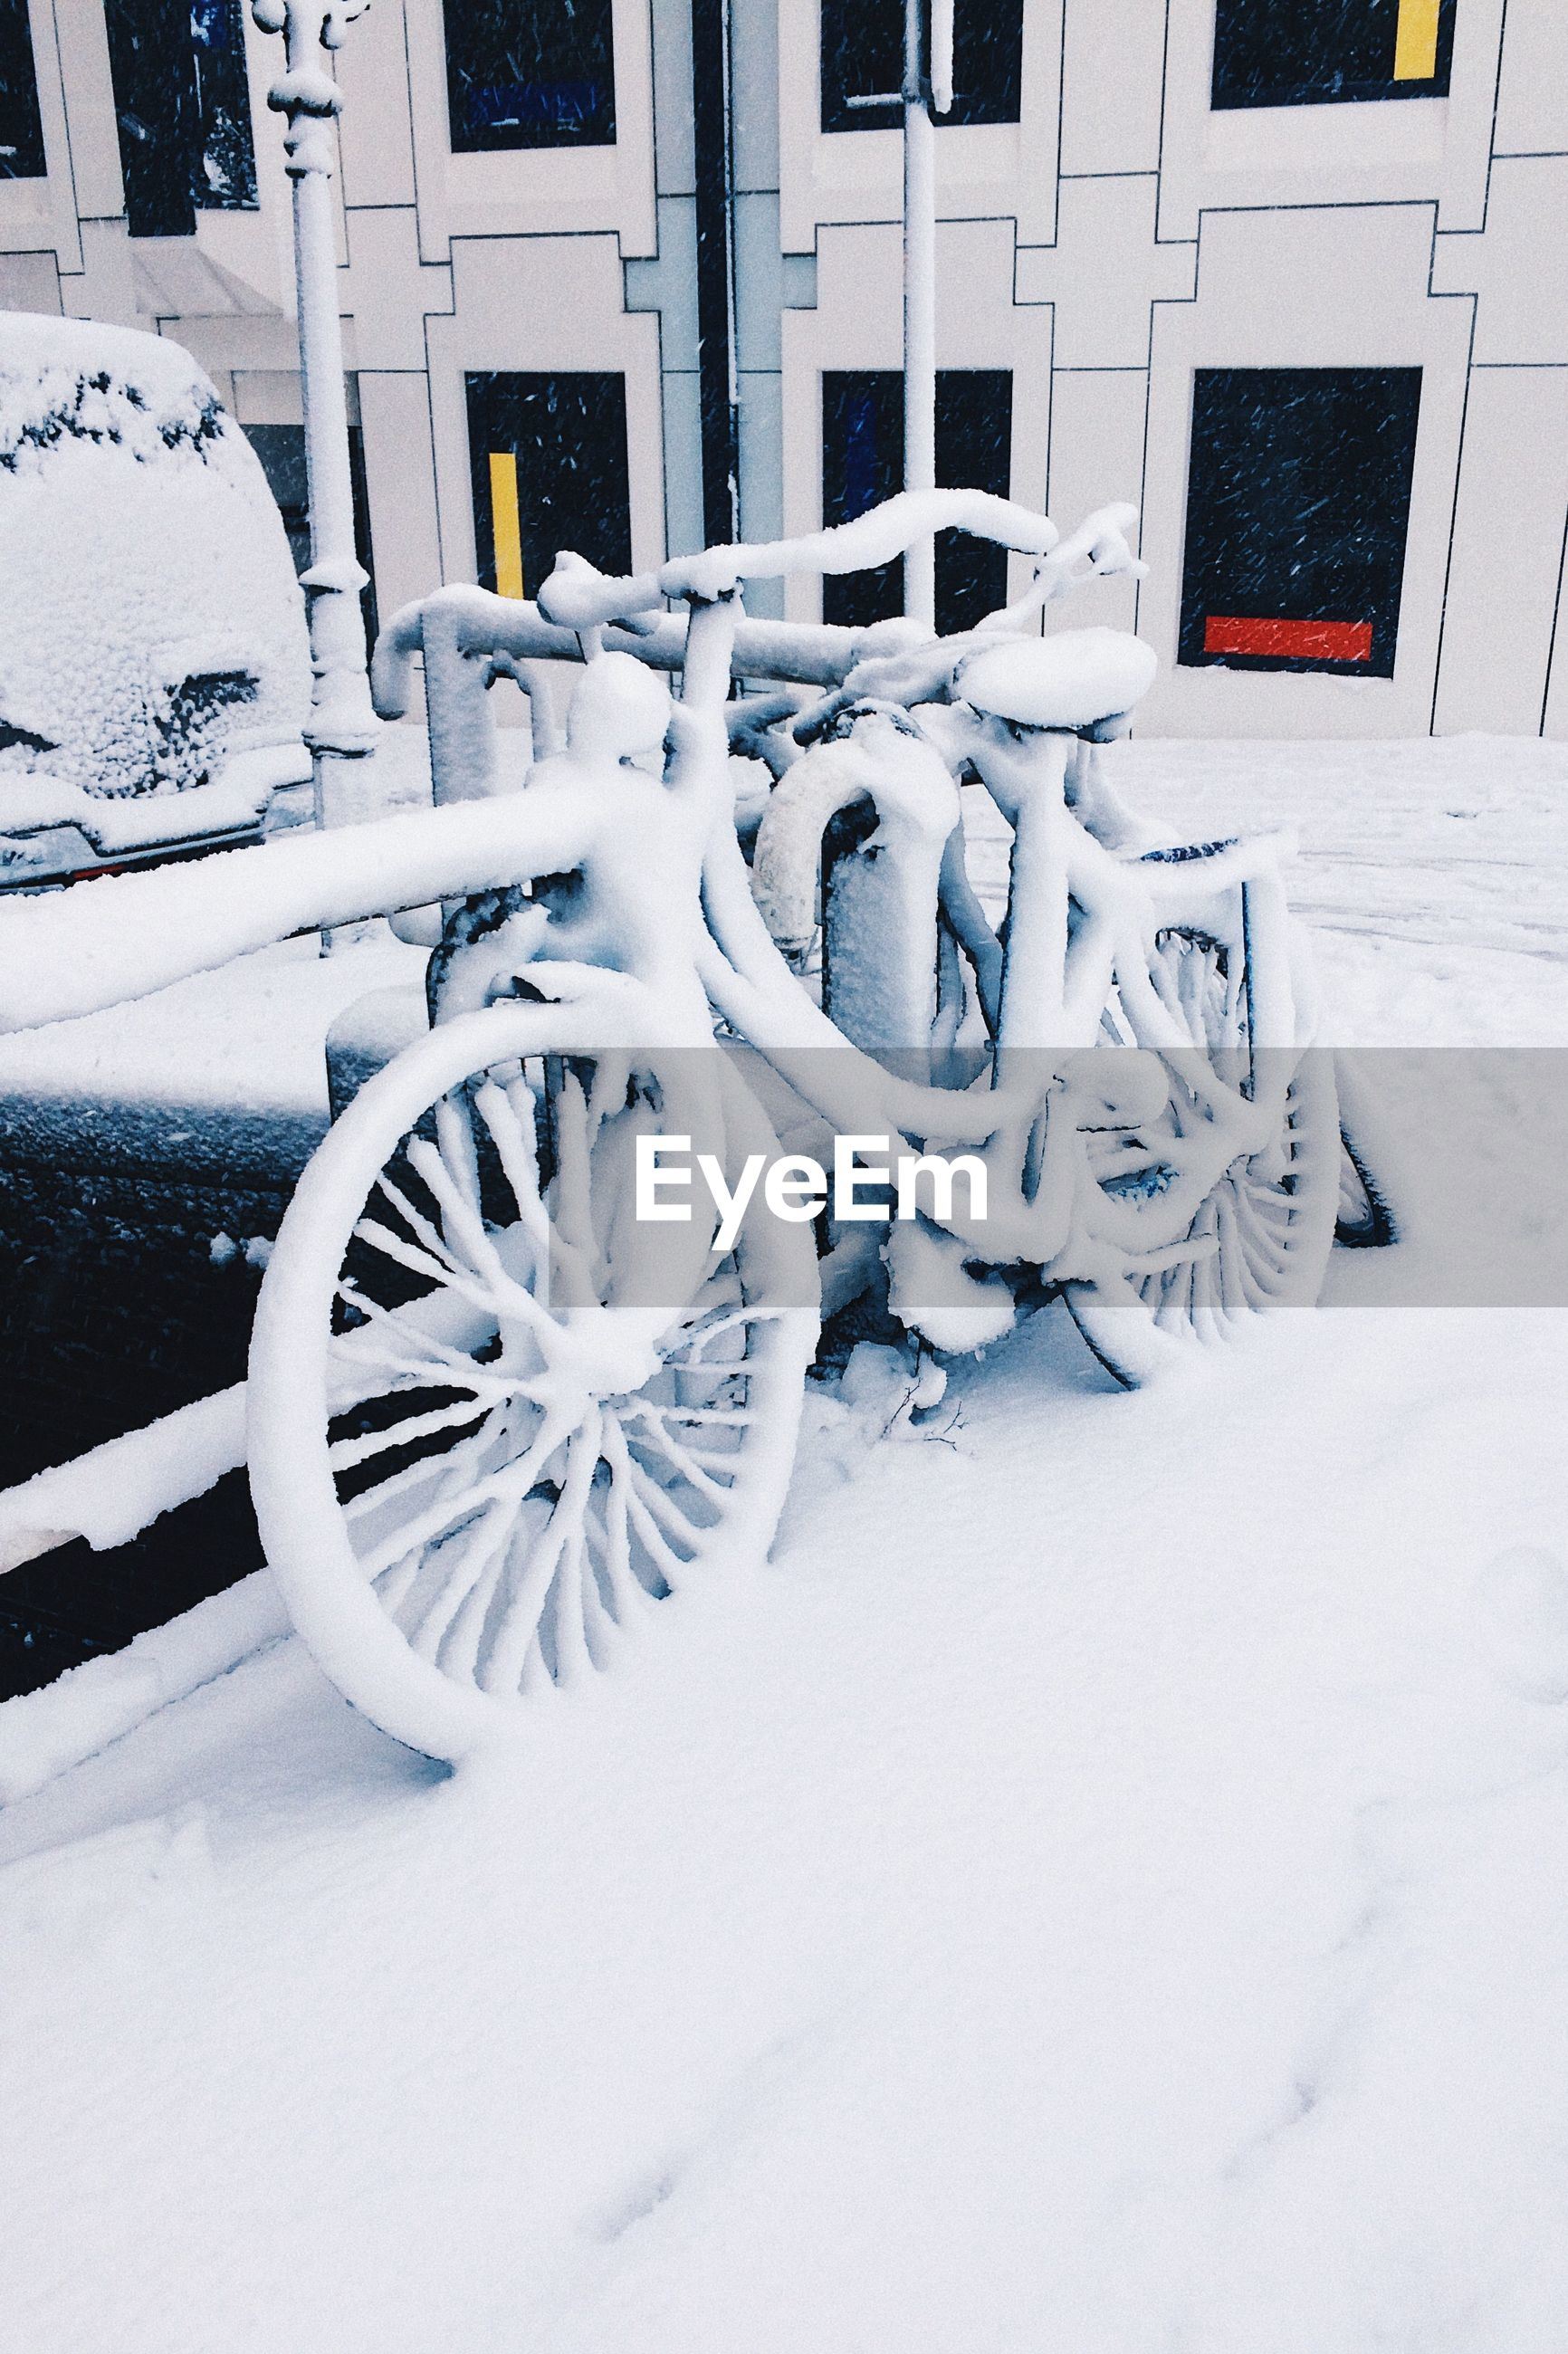 CLOSE-UP OF SNOW ON VEHICLE